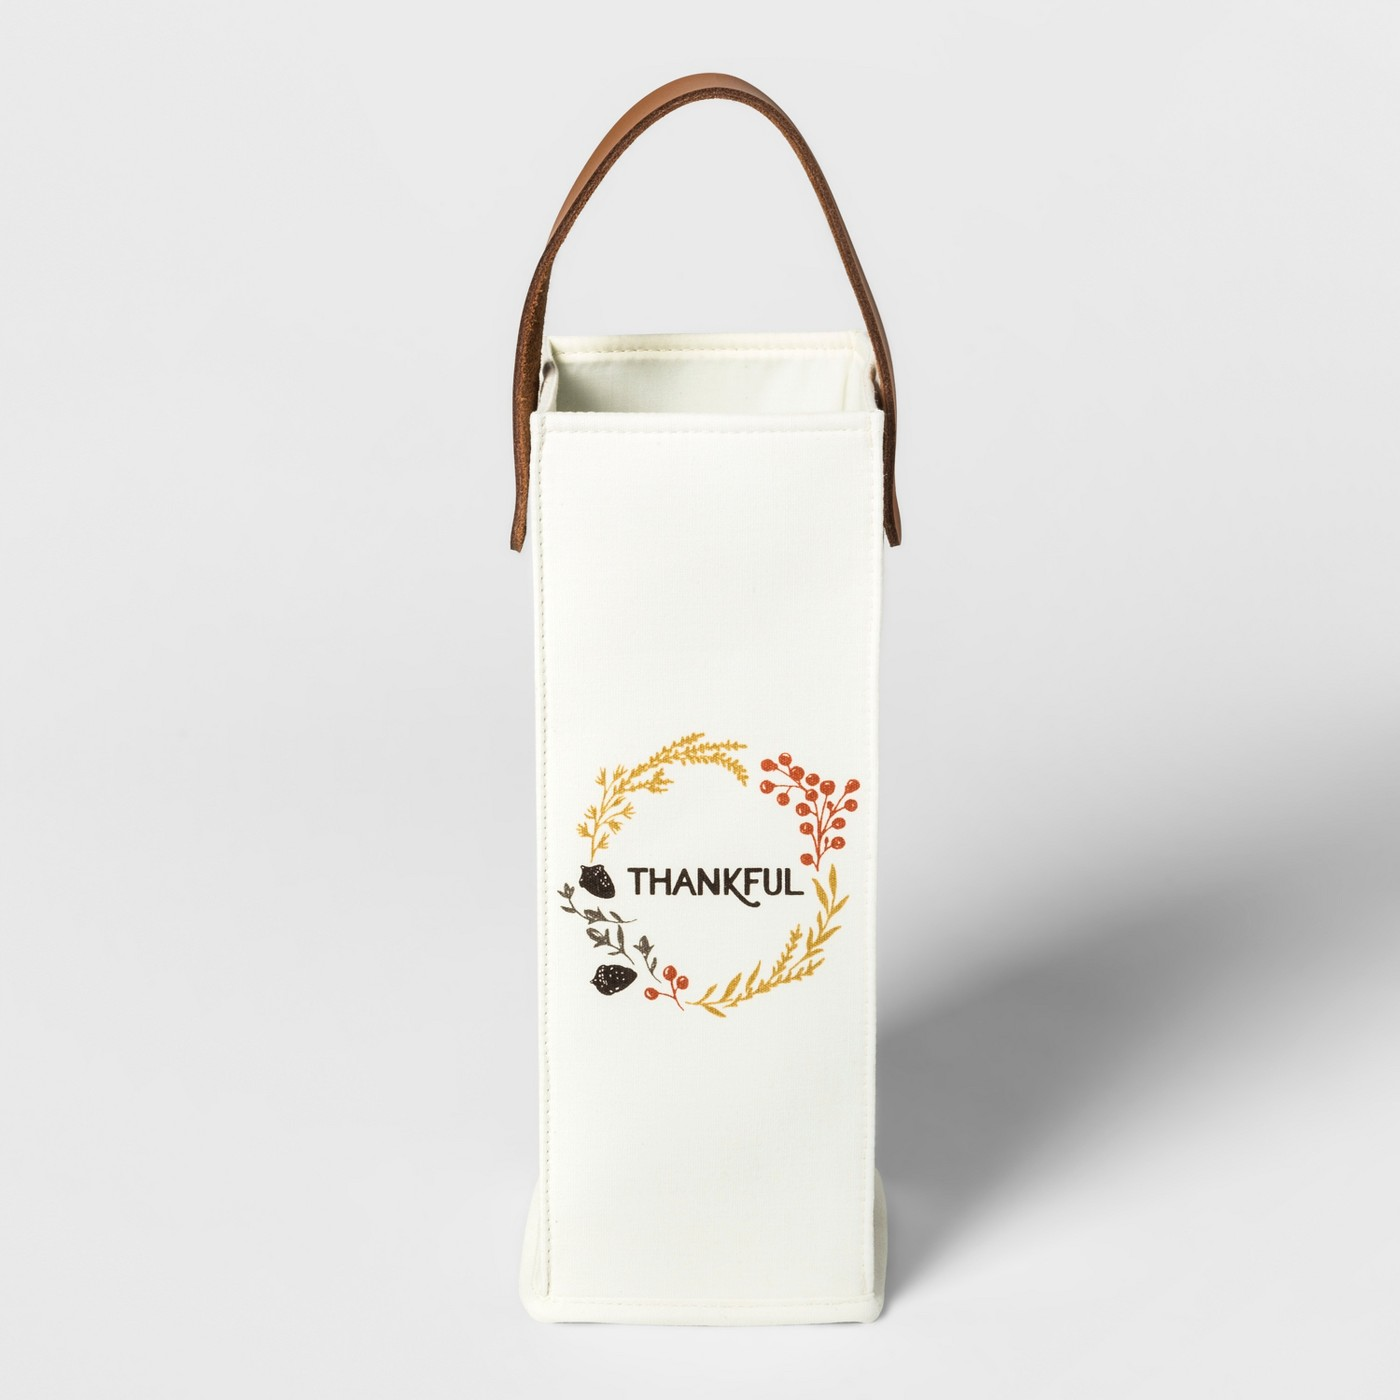 "Thankful Canvas Wine Bag With Leather Handle White/Brown - Thresholdâ""¢ - image 1 of 1"